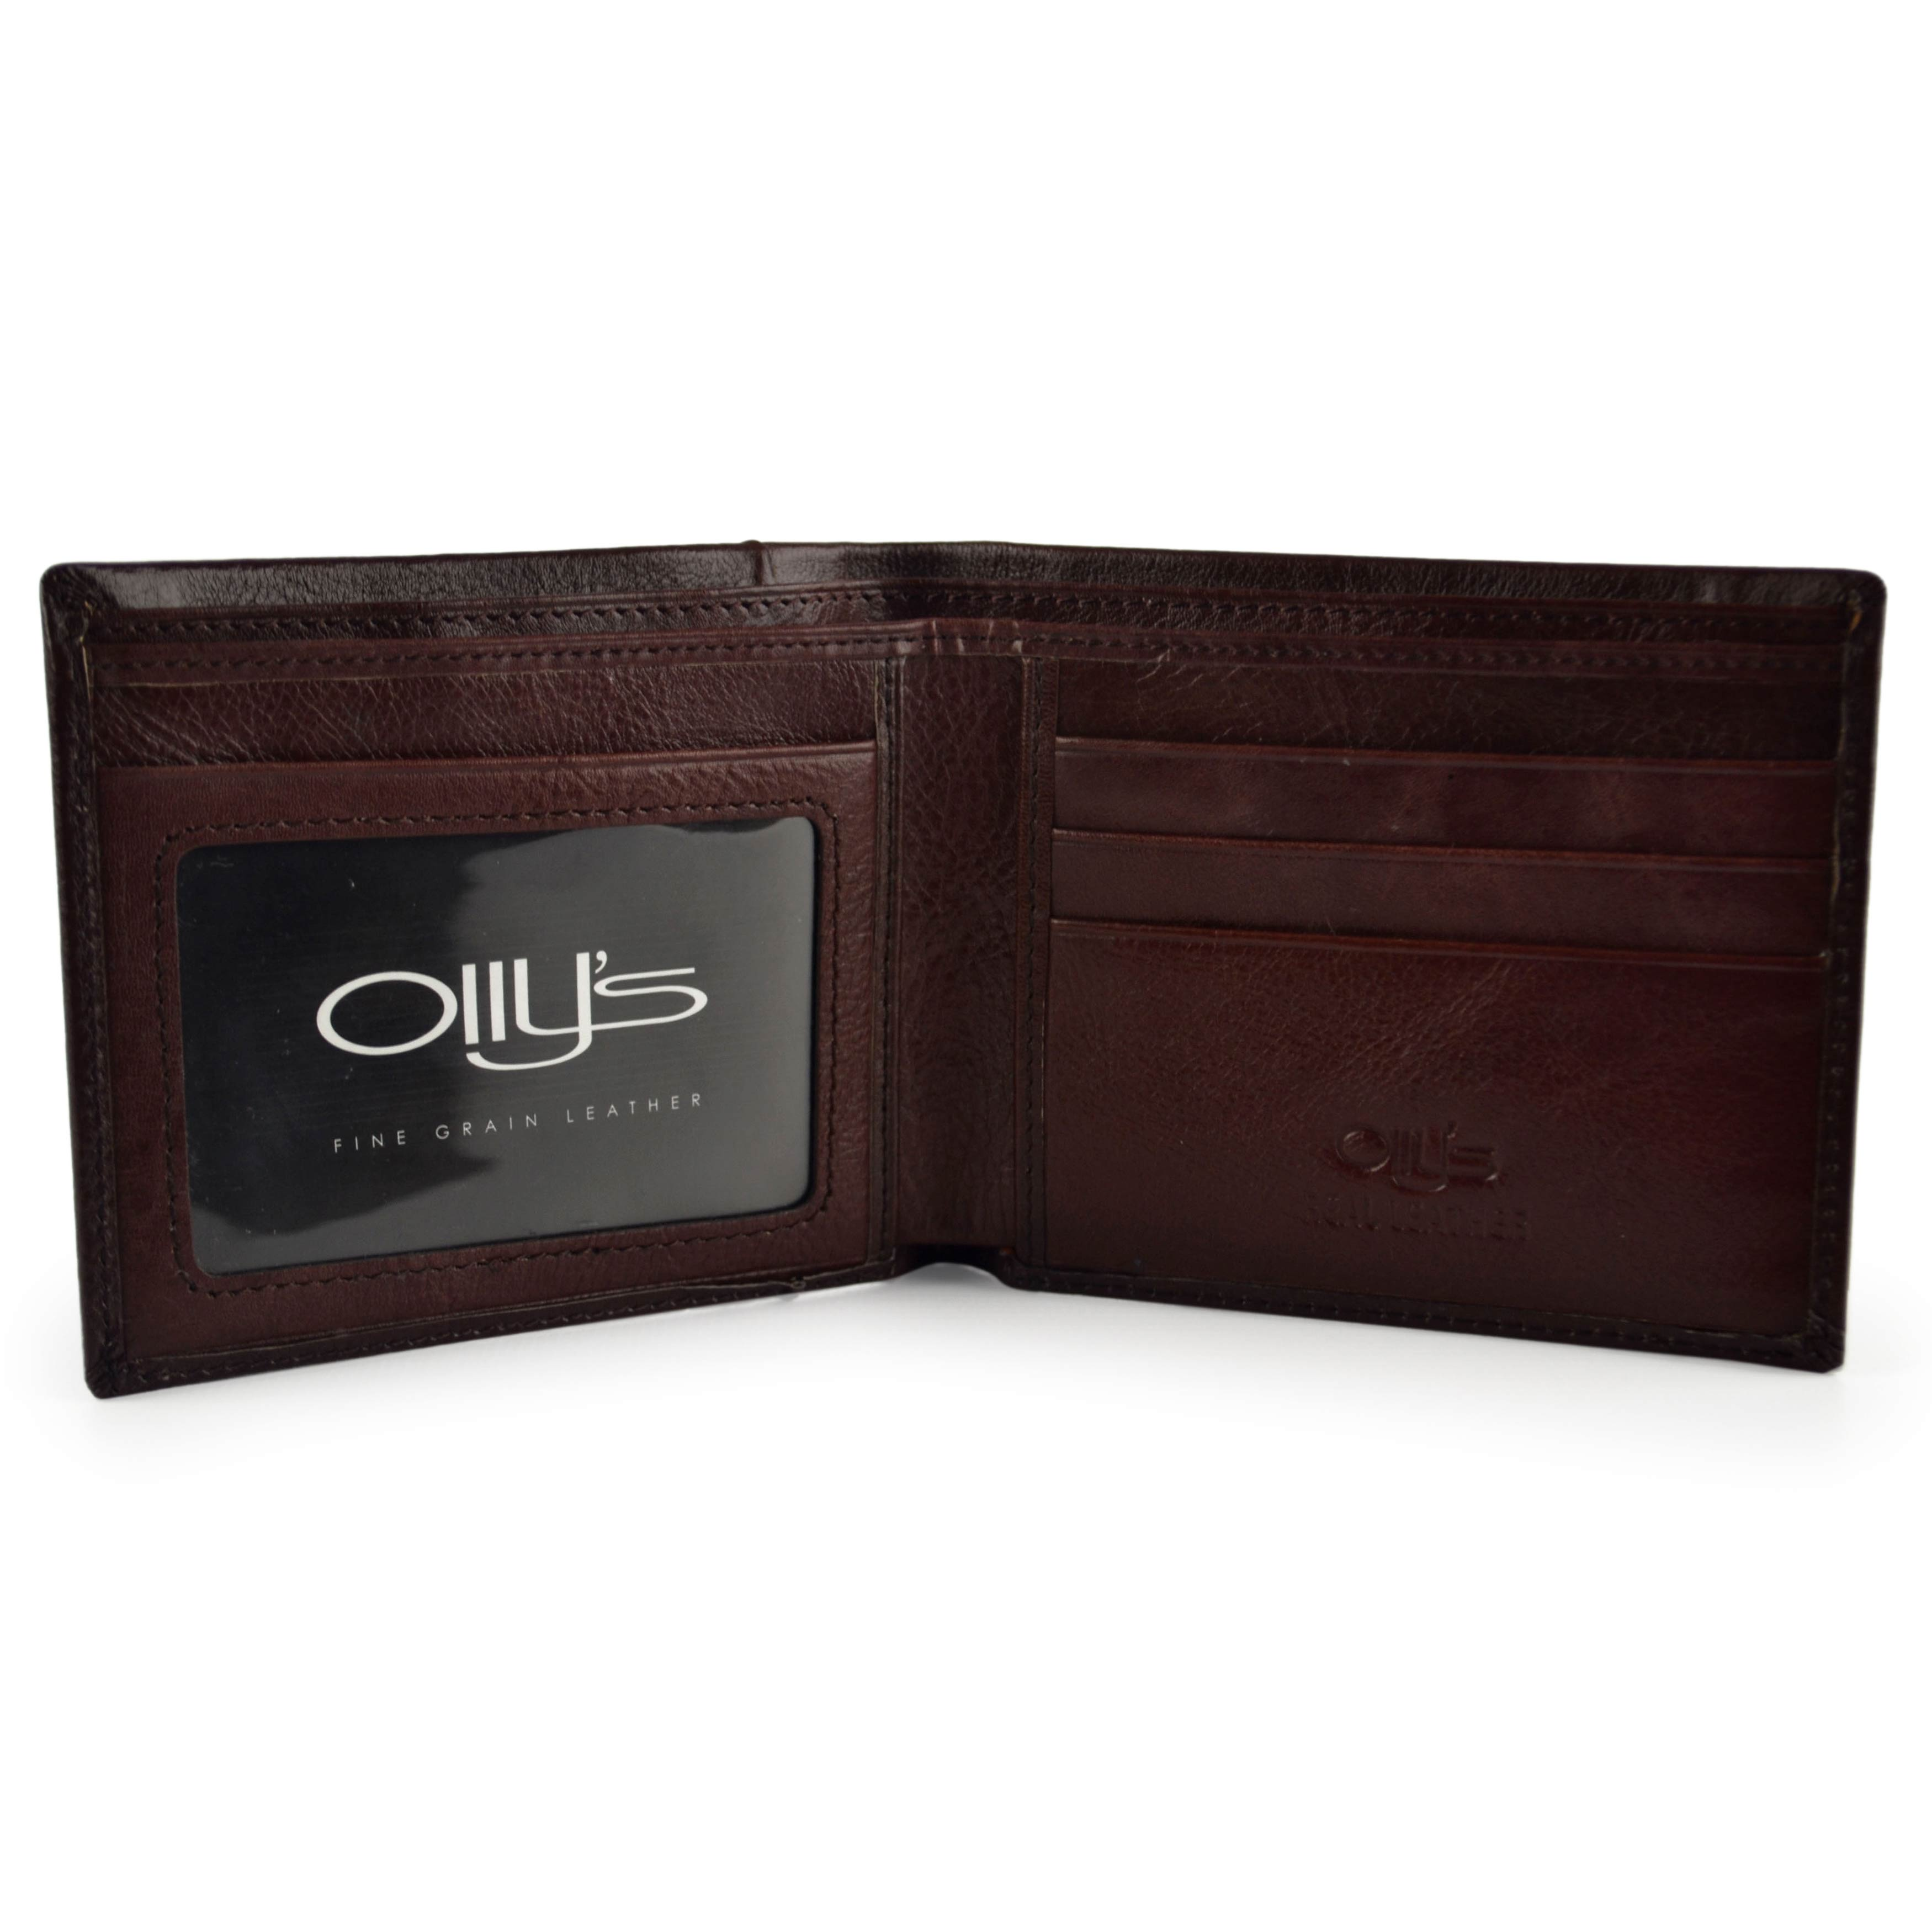 thumbnail 11 - Mens-Fine-Grain-Classic-LEATHER-Wallet-by-OLLY-039-s-Banks-Collection-Gift-Boxed